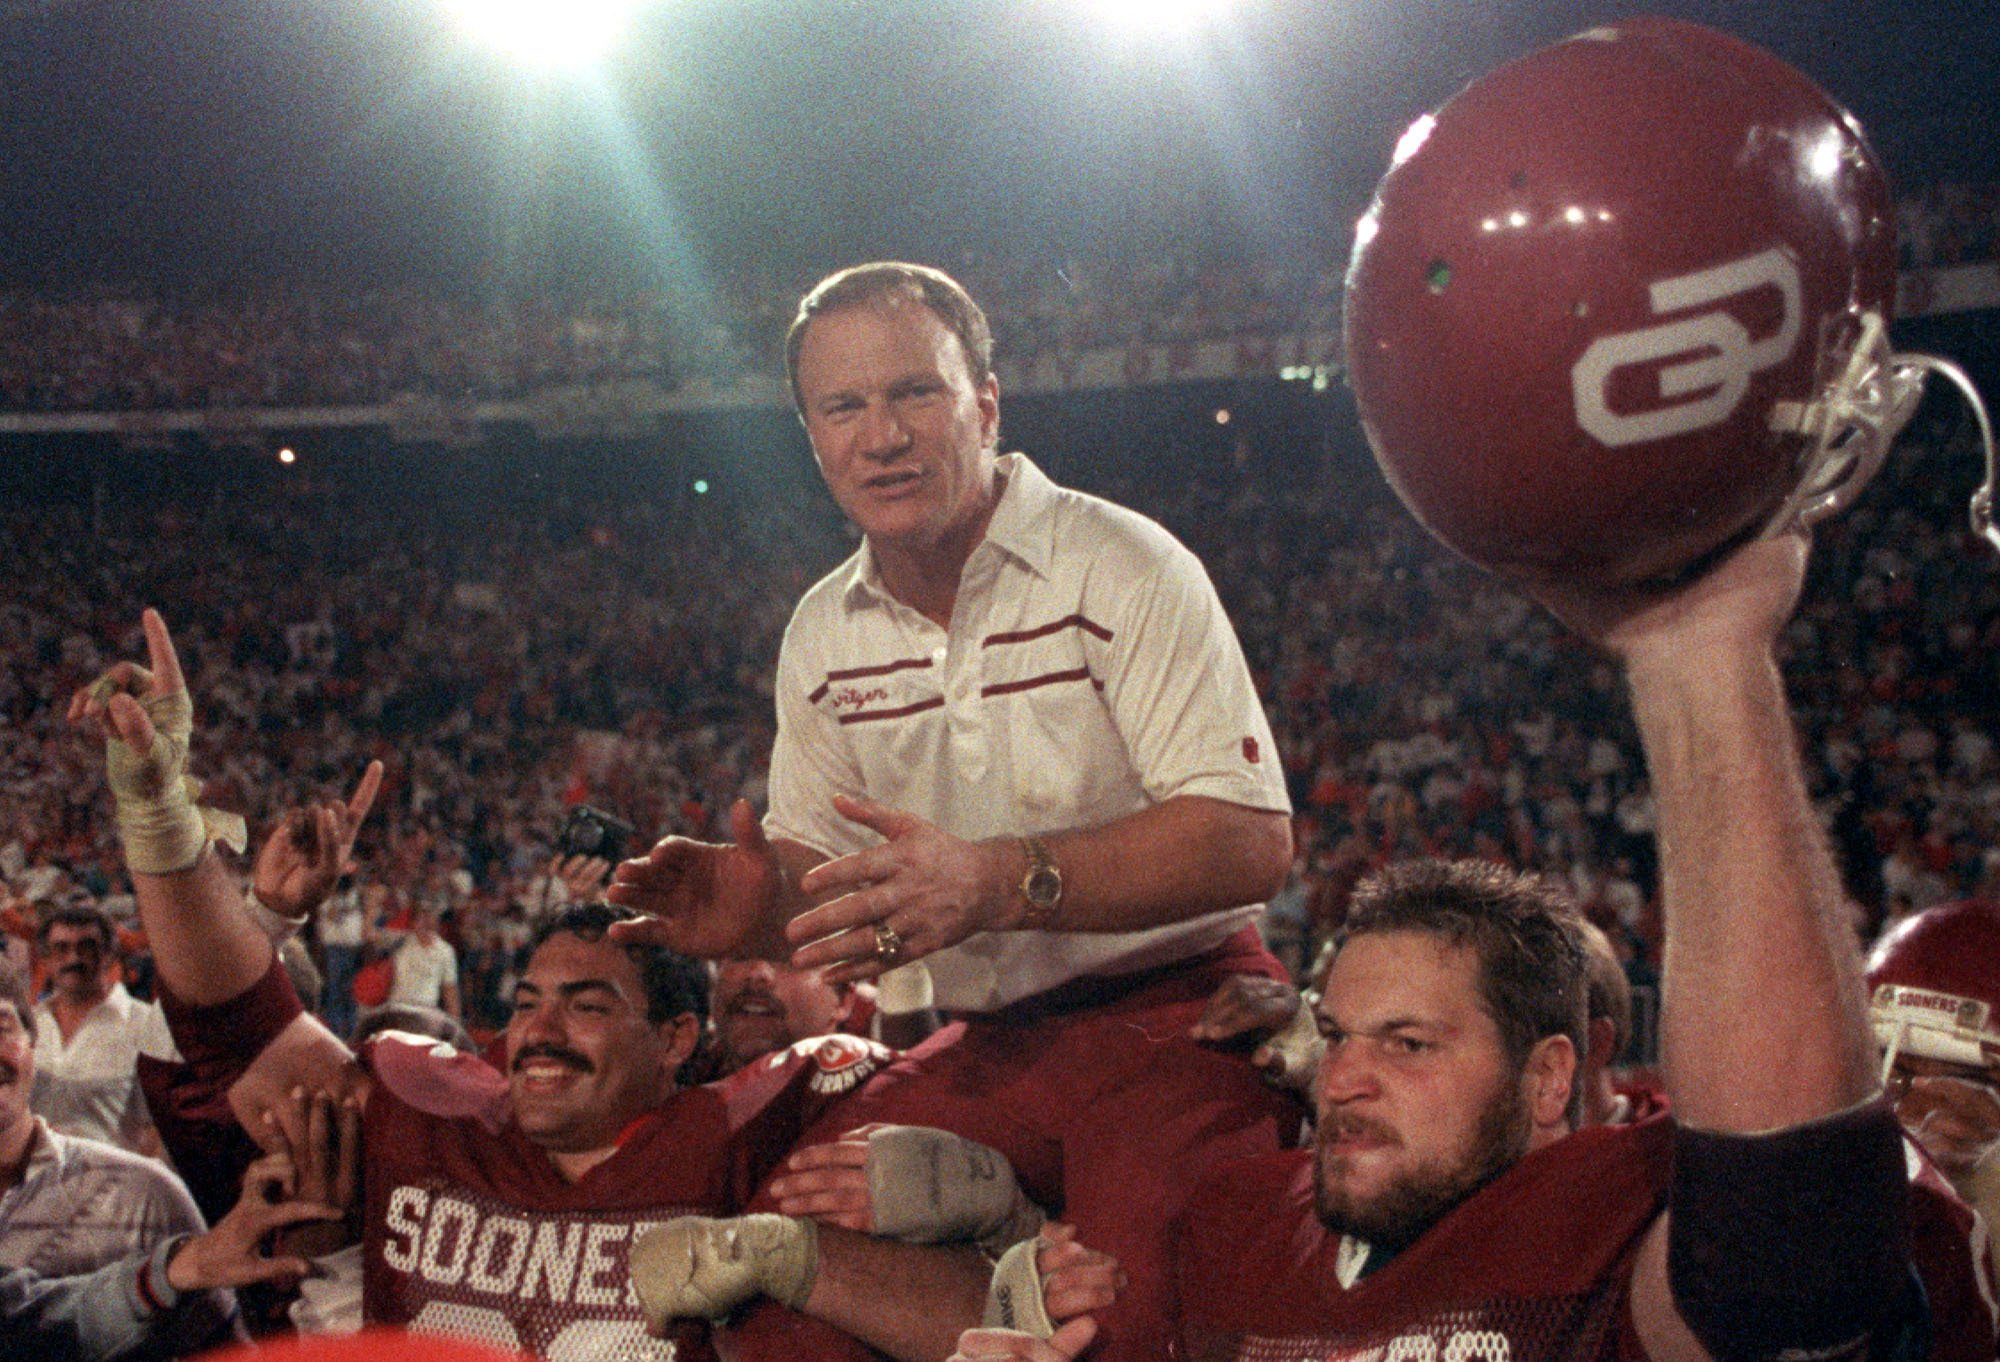 Former Oklahoma coach barry Switzer admitted to creating fake news for his own personal enjoyment. (AP)